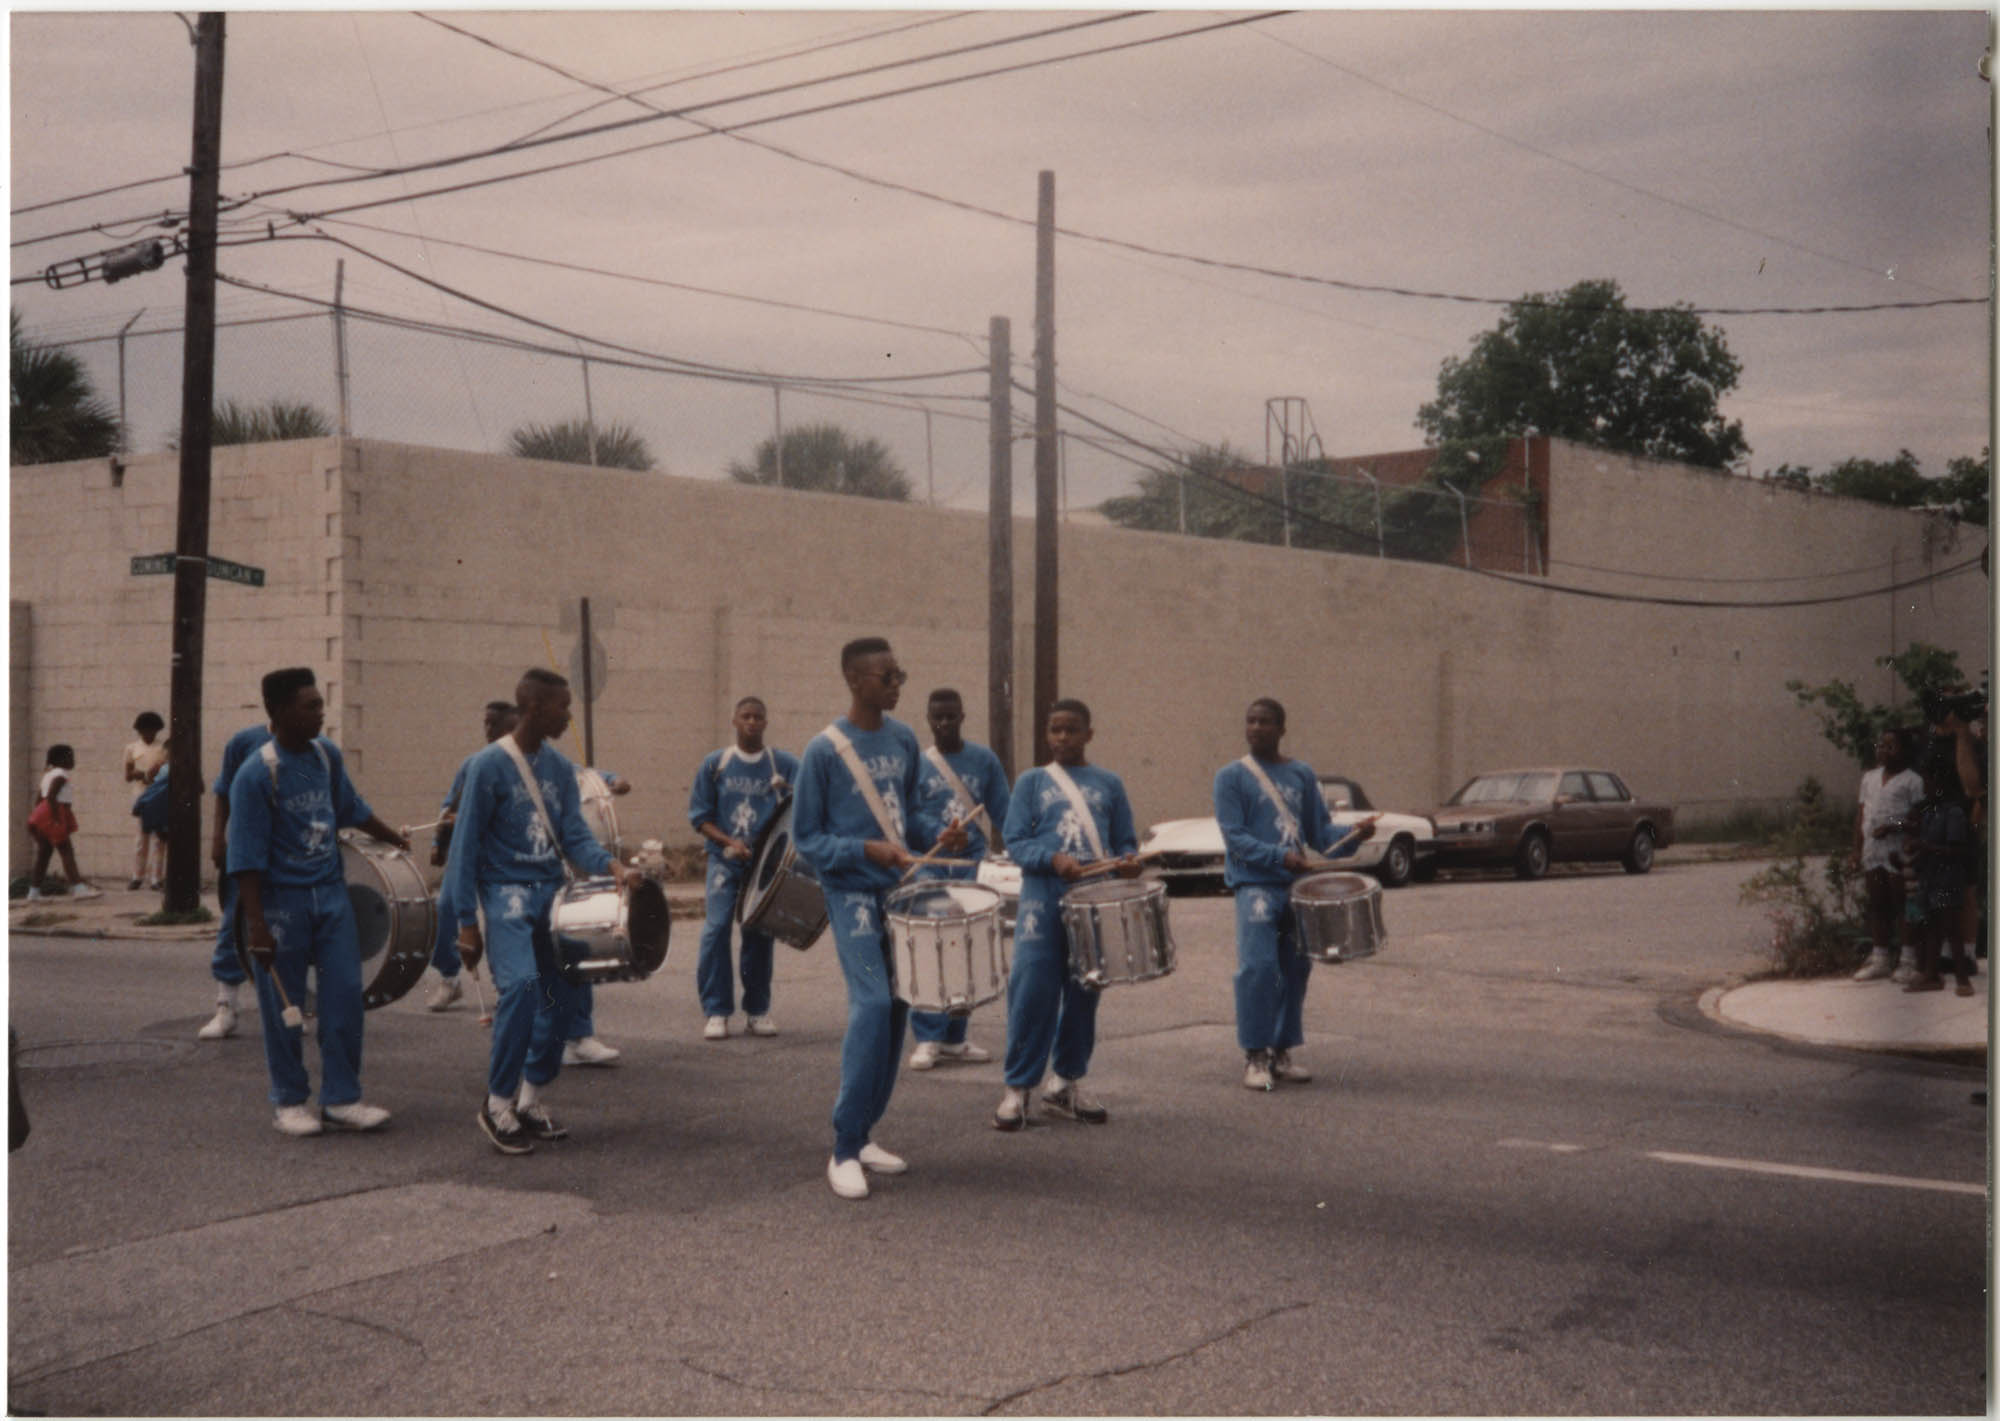 Photograph of a Drum Line